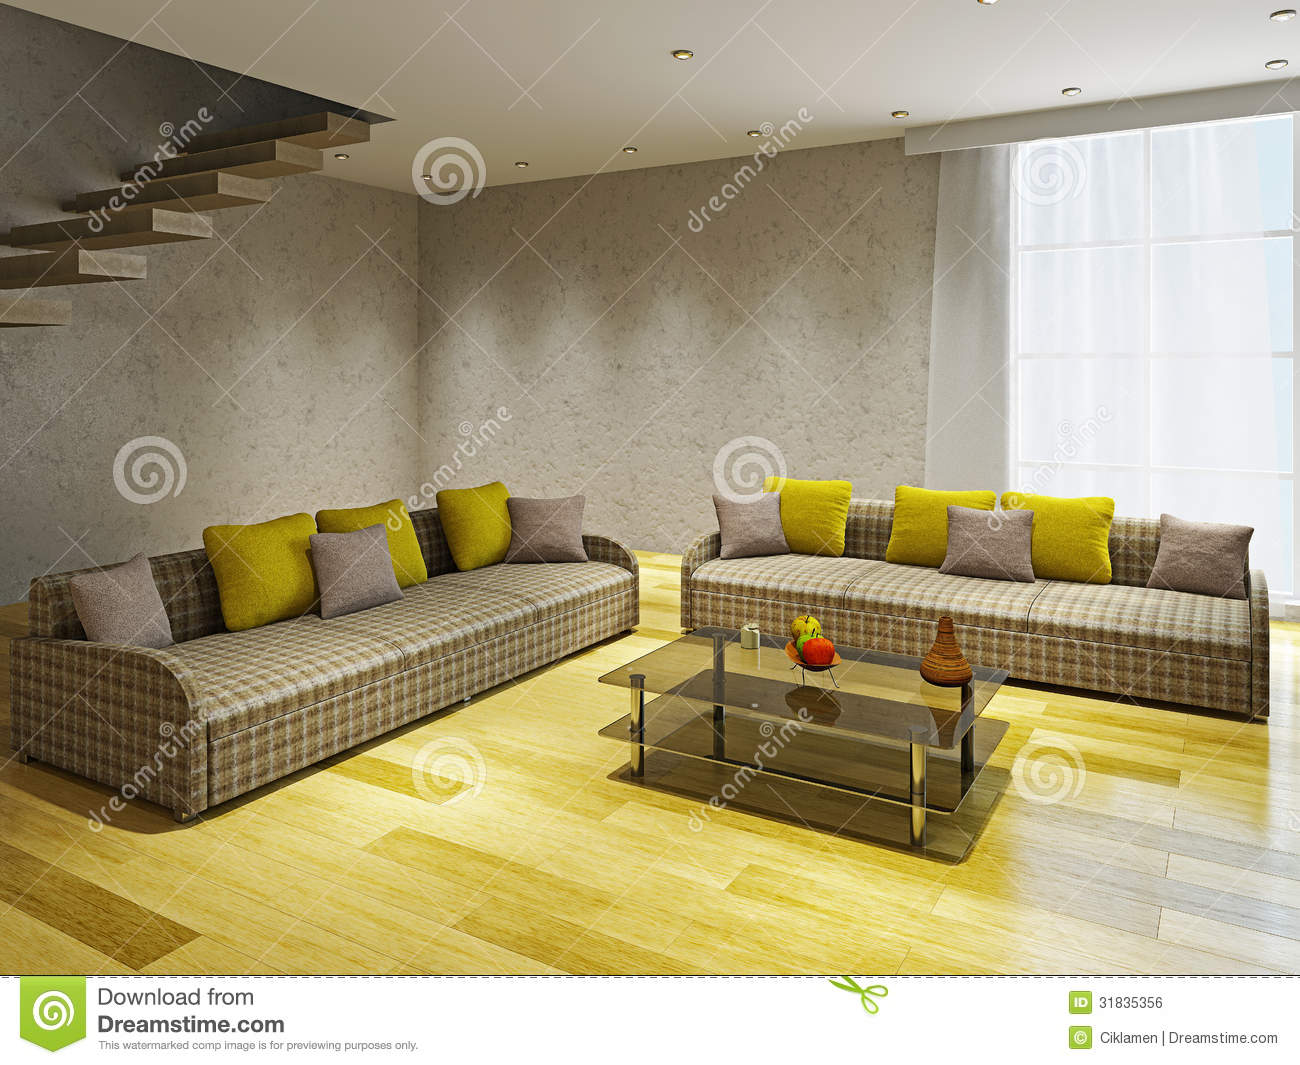 Living Room Two Sofas In Living Room livingroom with two sofas royalty free stock image 31835356 sofas